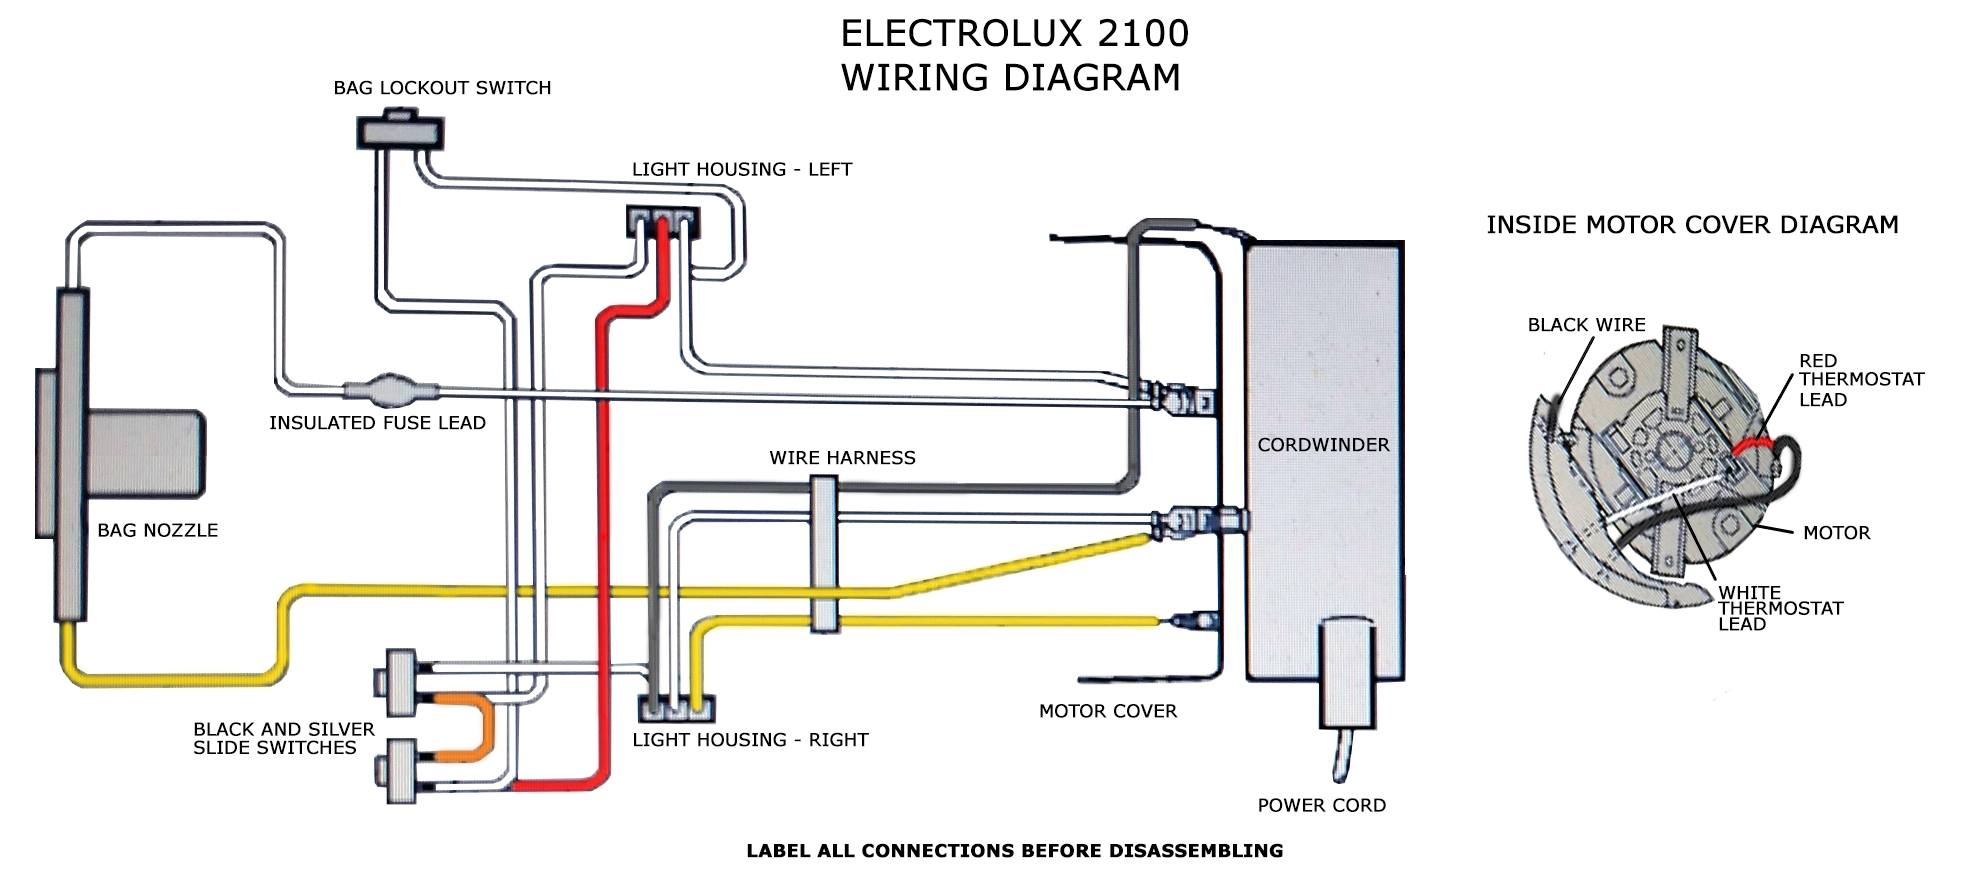 2100 wiring diagram miele vacuum wiring diagram osram wiring diagram \u2022 wiring diagram filter queen wiring diagram at bayanpartner.co